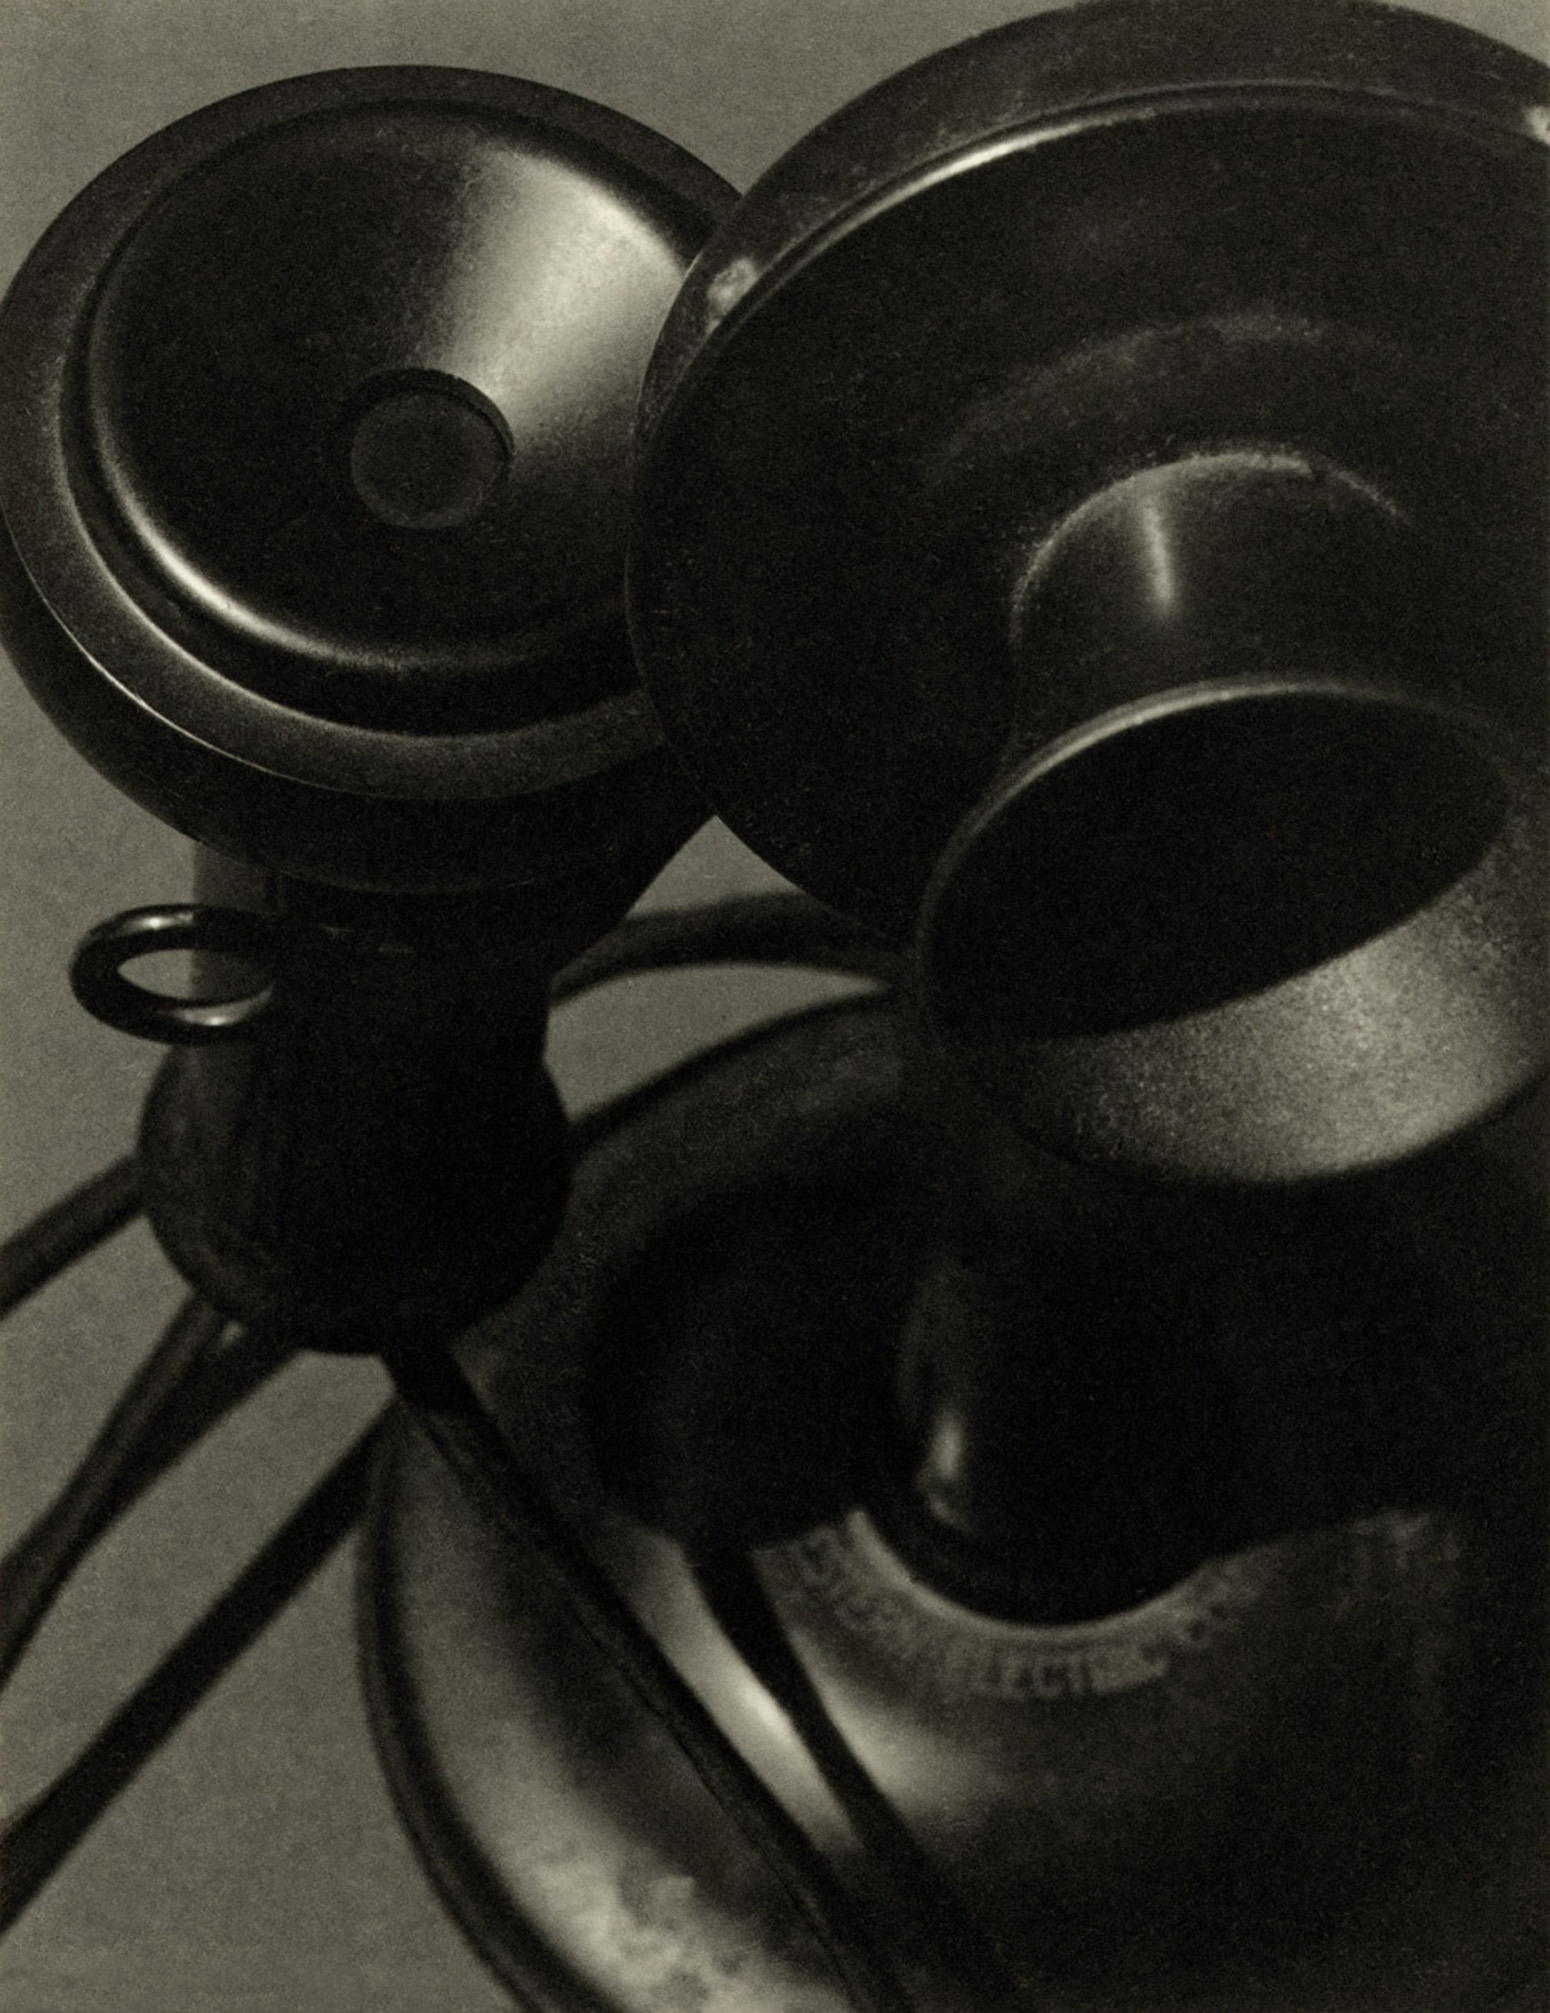 Telephone Study of Forms/Paul Outerbridge